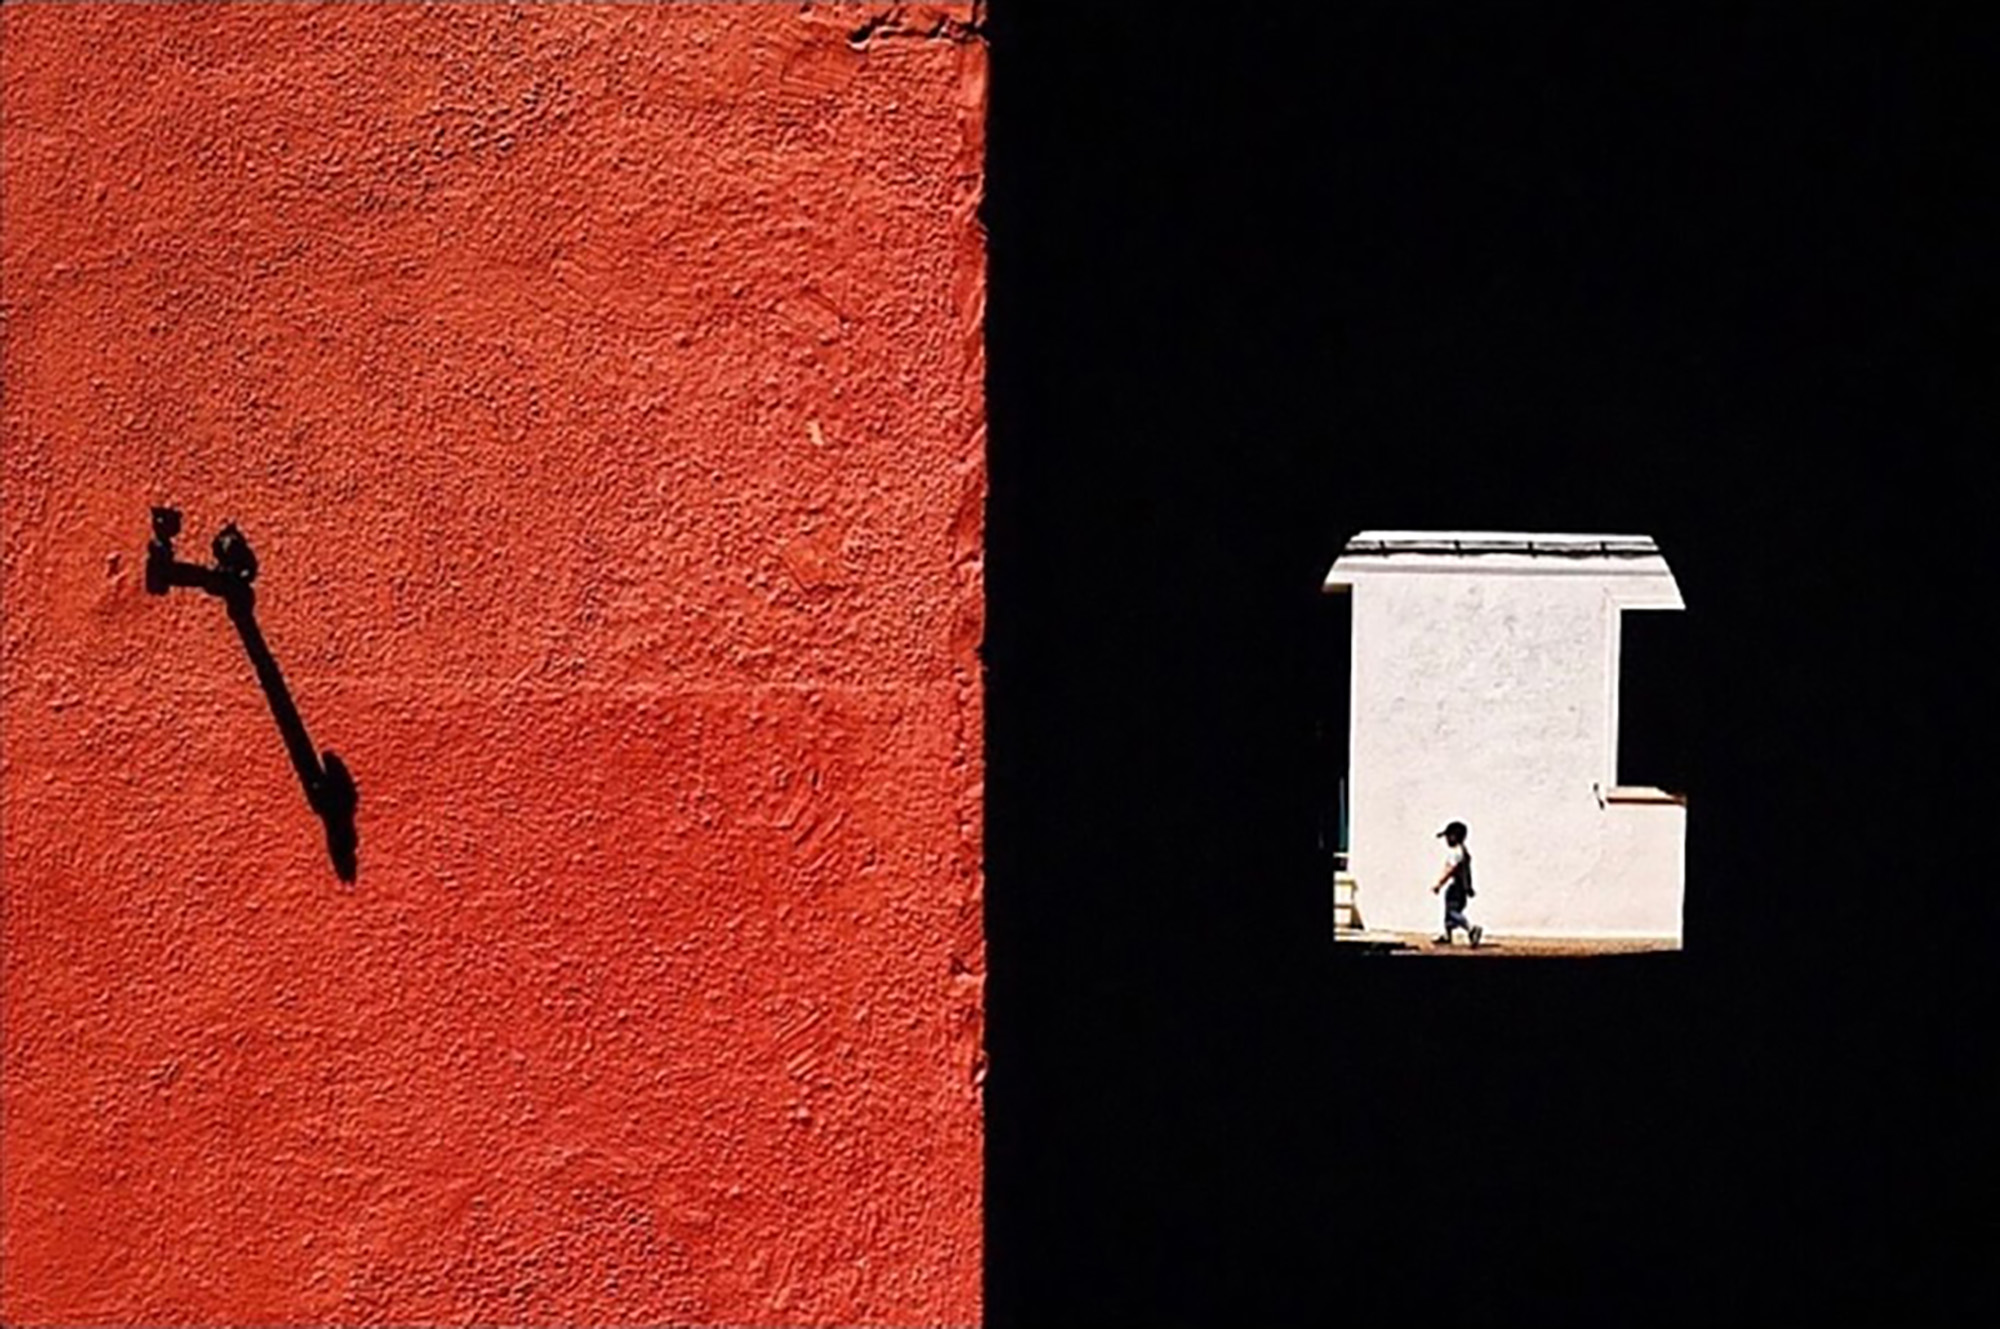 best_top_color_street_photography_compositions_12.jpg